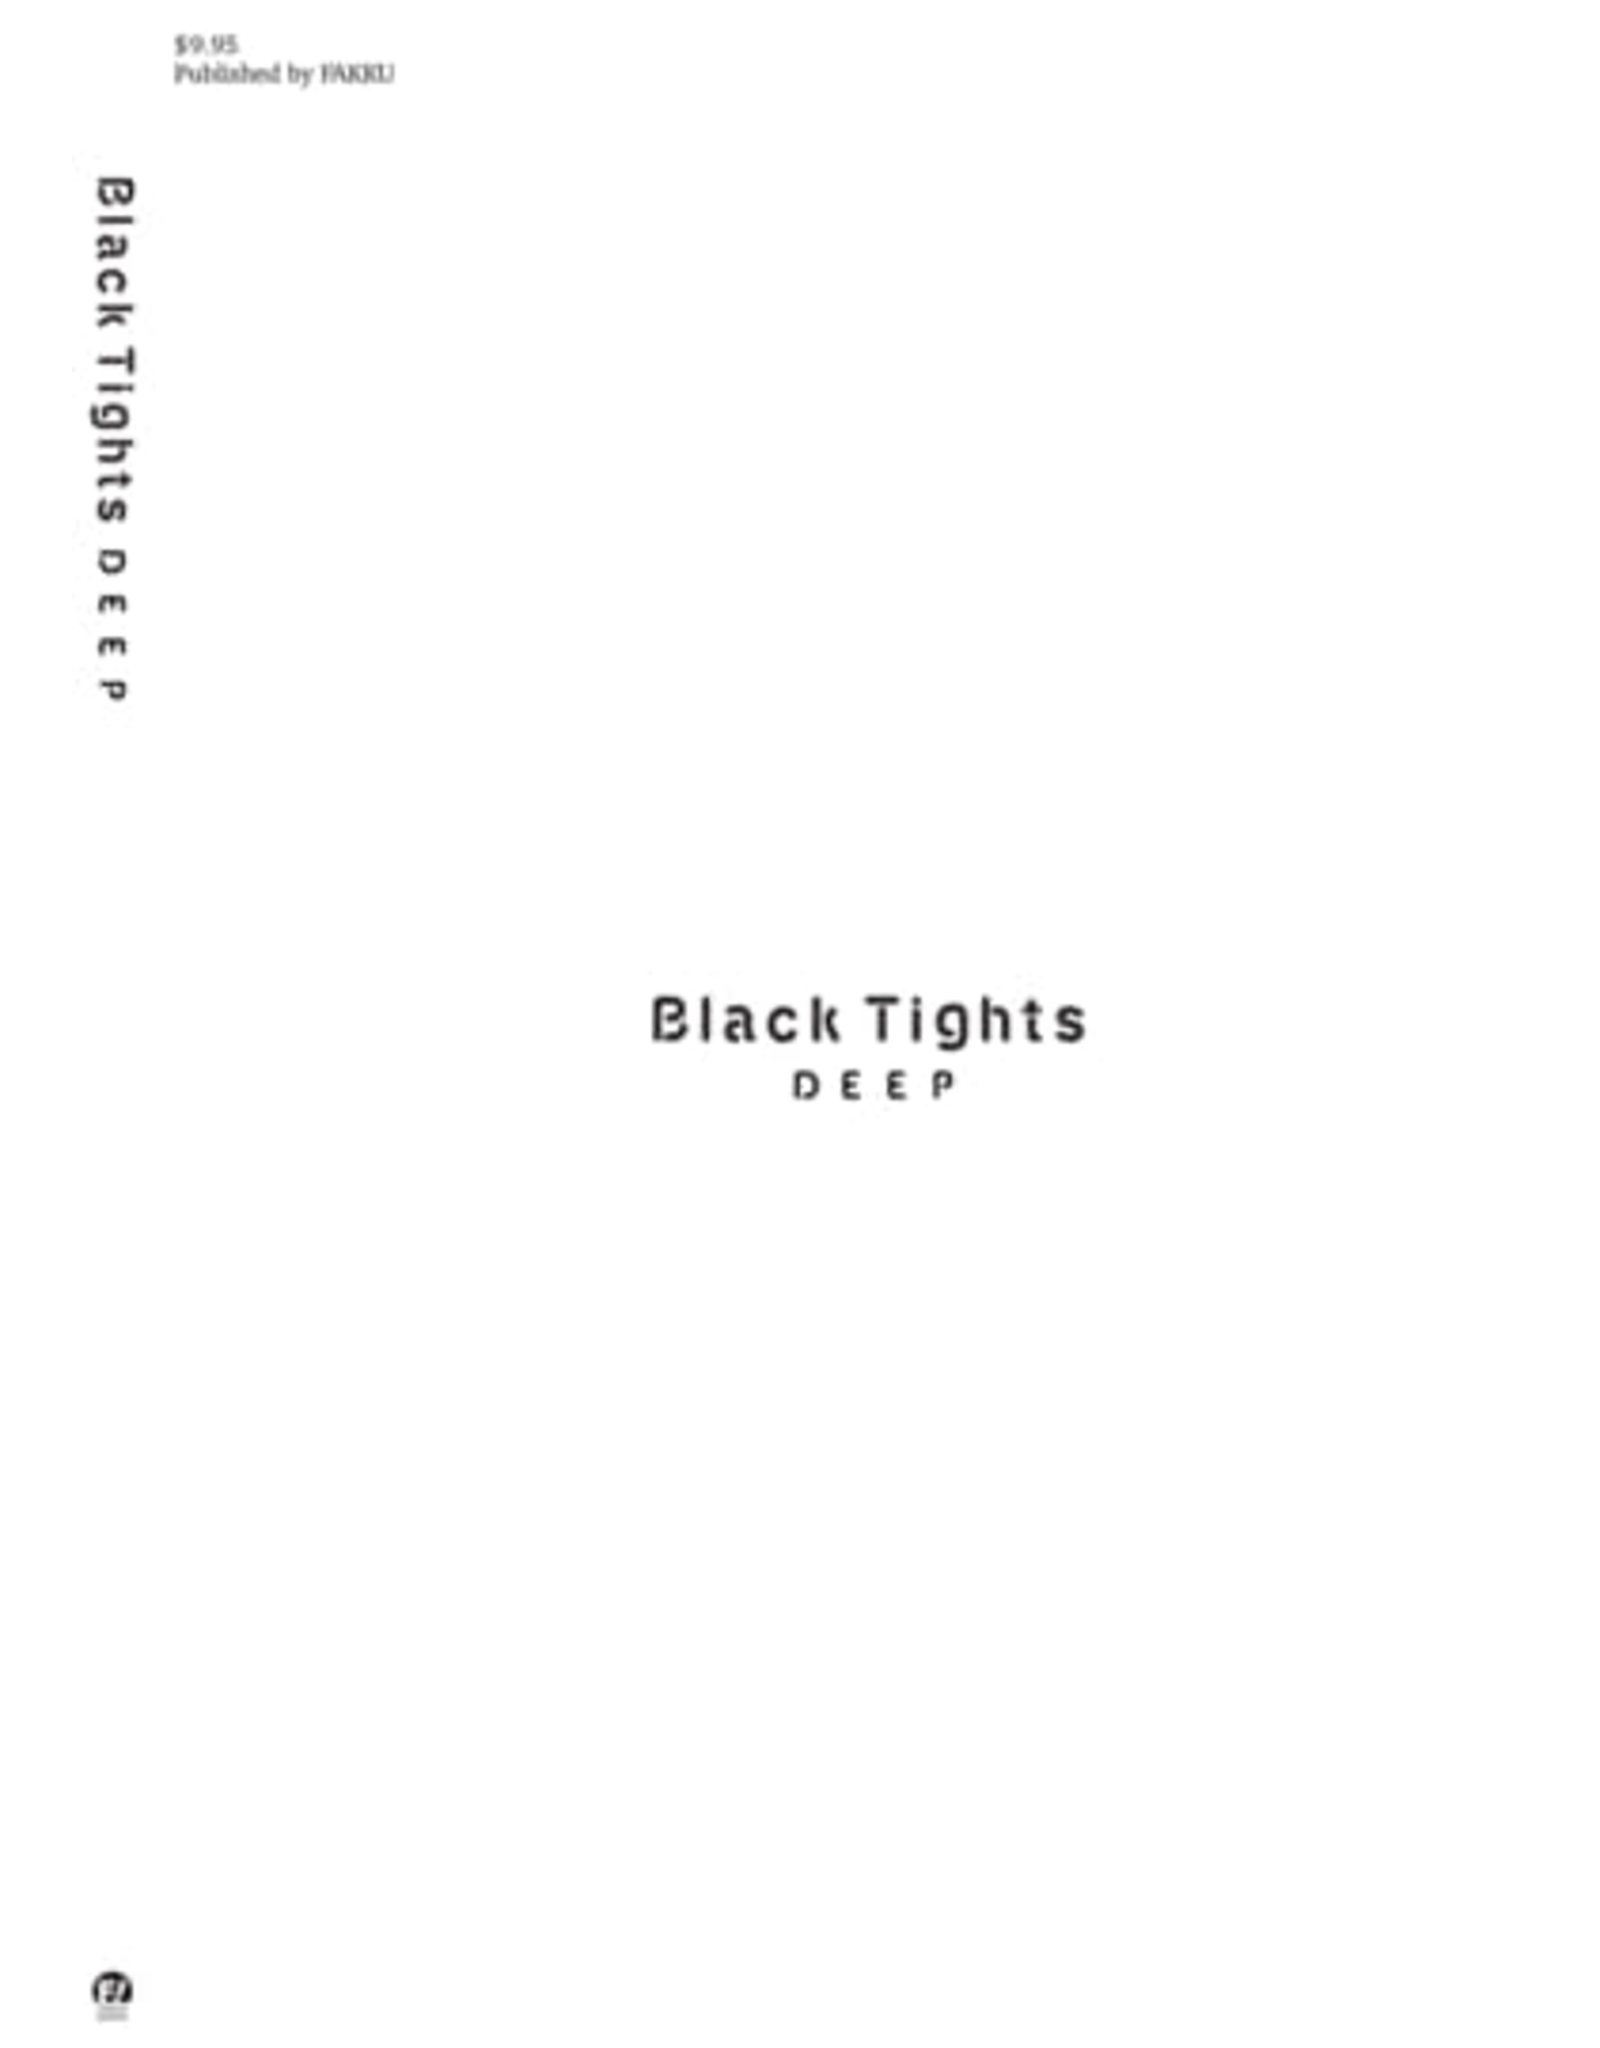 Black Tights Deep - Art Book - 102 pages (English)